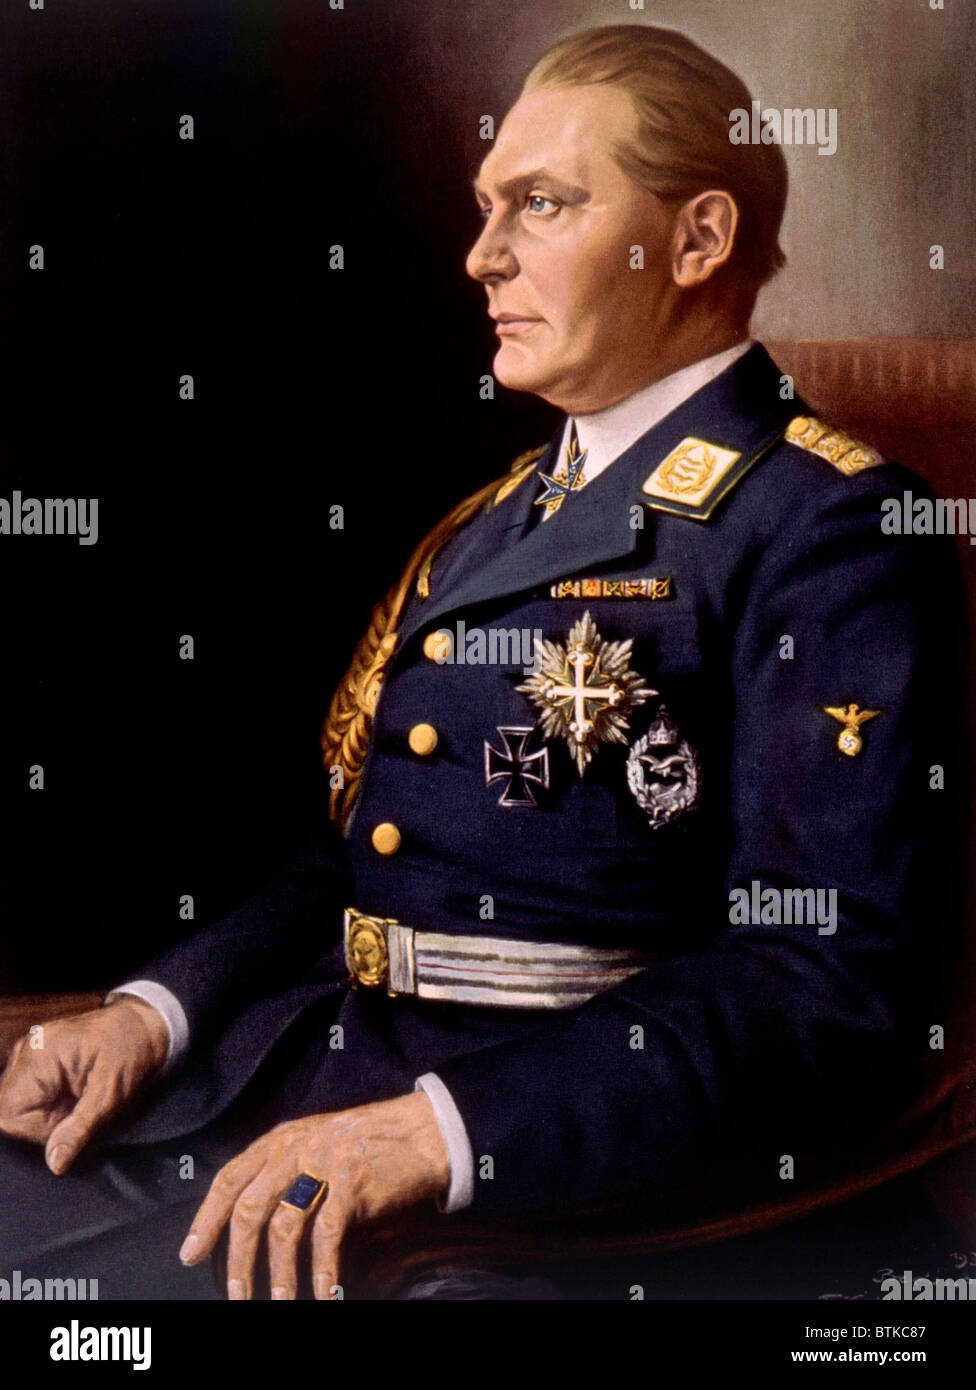 Hermann Goering, (1893-1946), German politician and military leader and leading member of the Nazi Party. 1934 paintingStock Photo